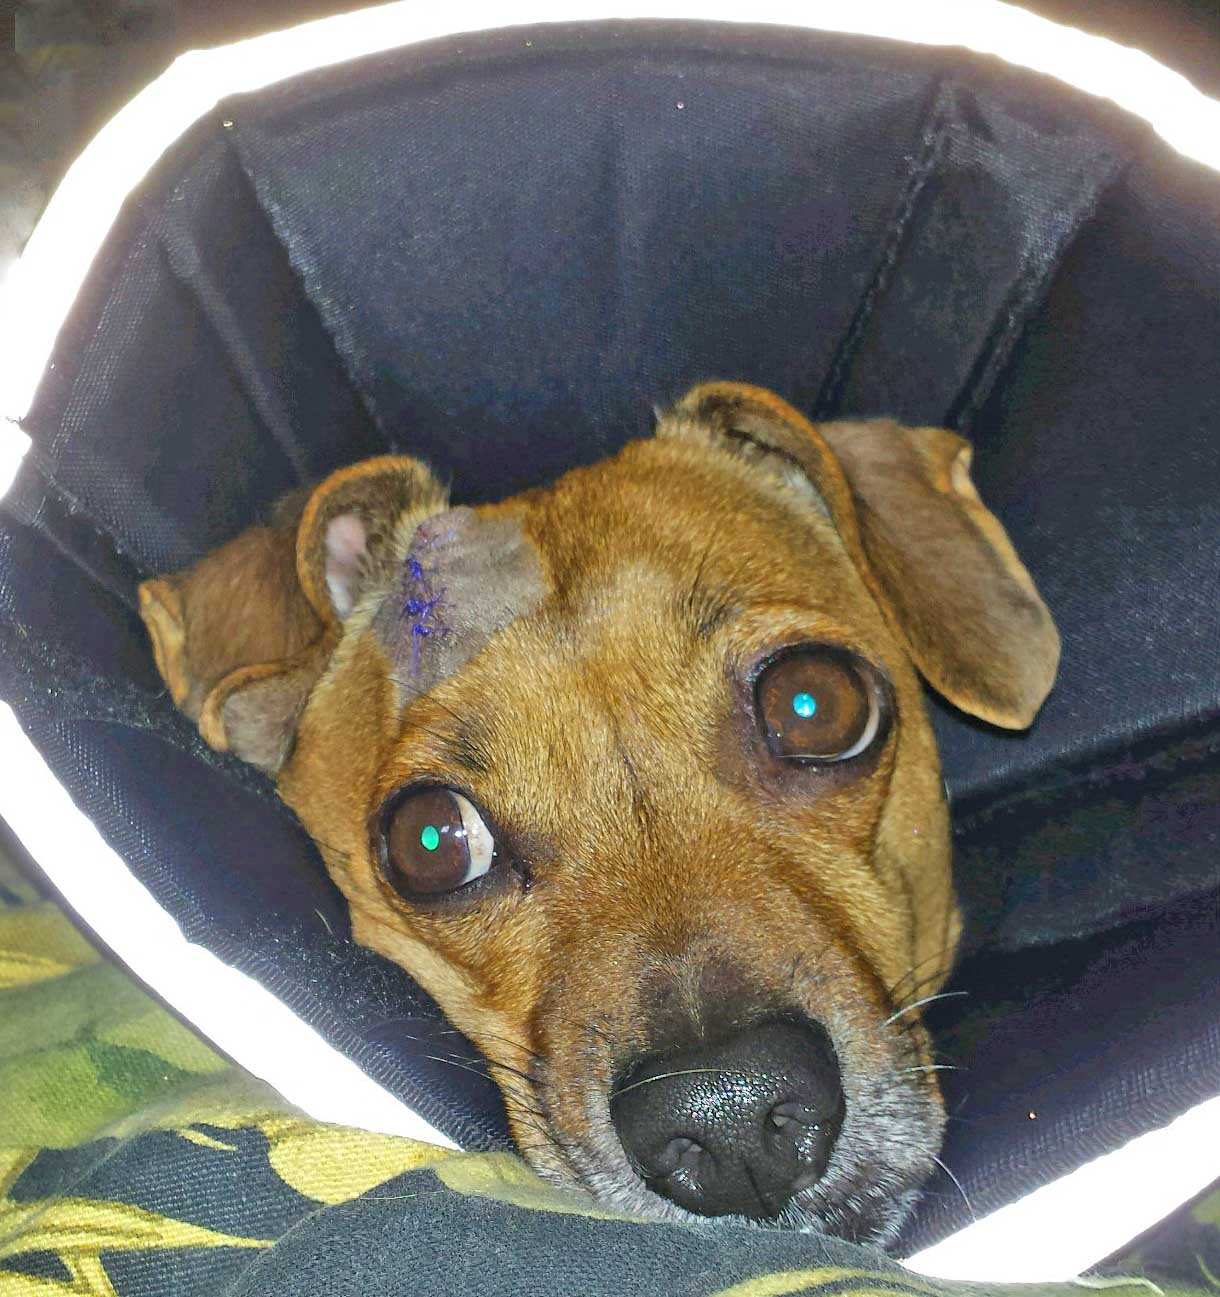 Doodle post surgery. Photo: (c) Barb Ayers, DogDiary.org